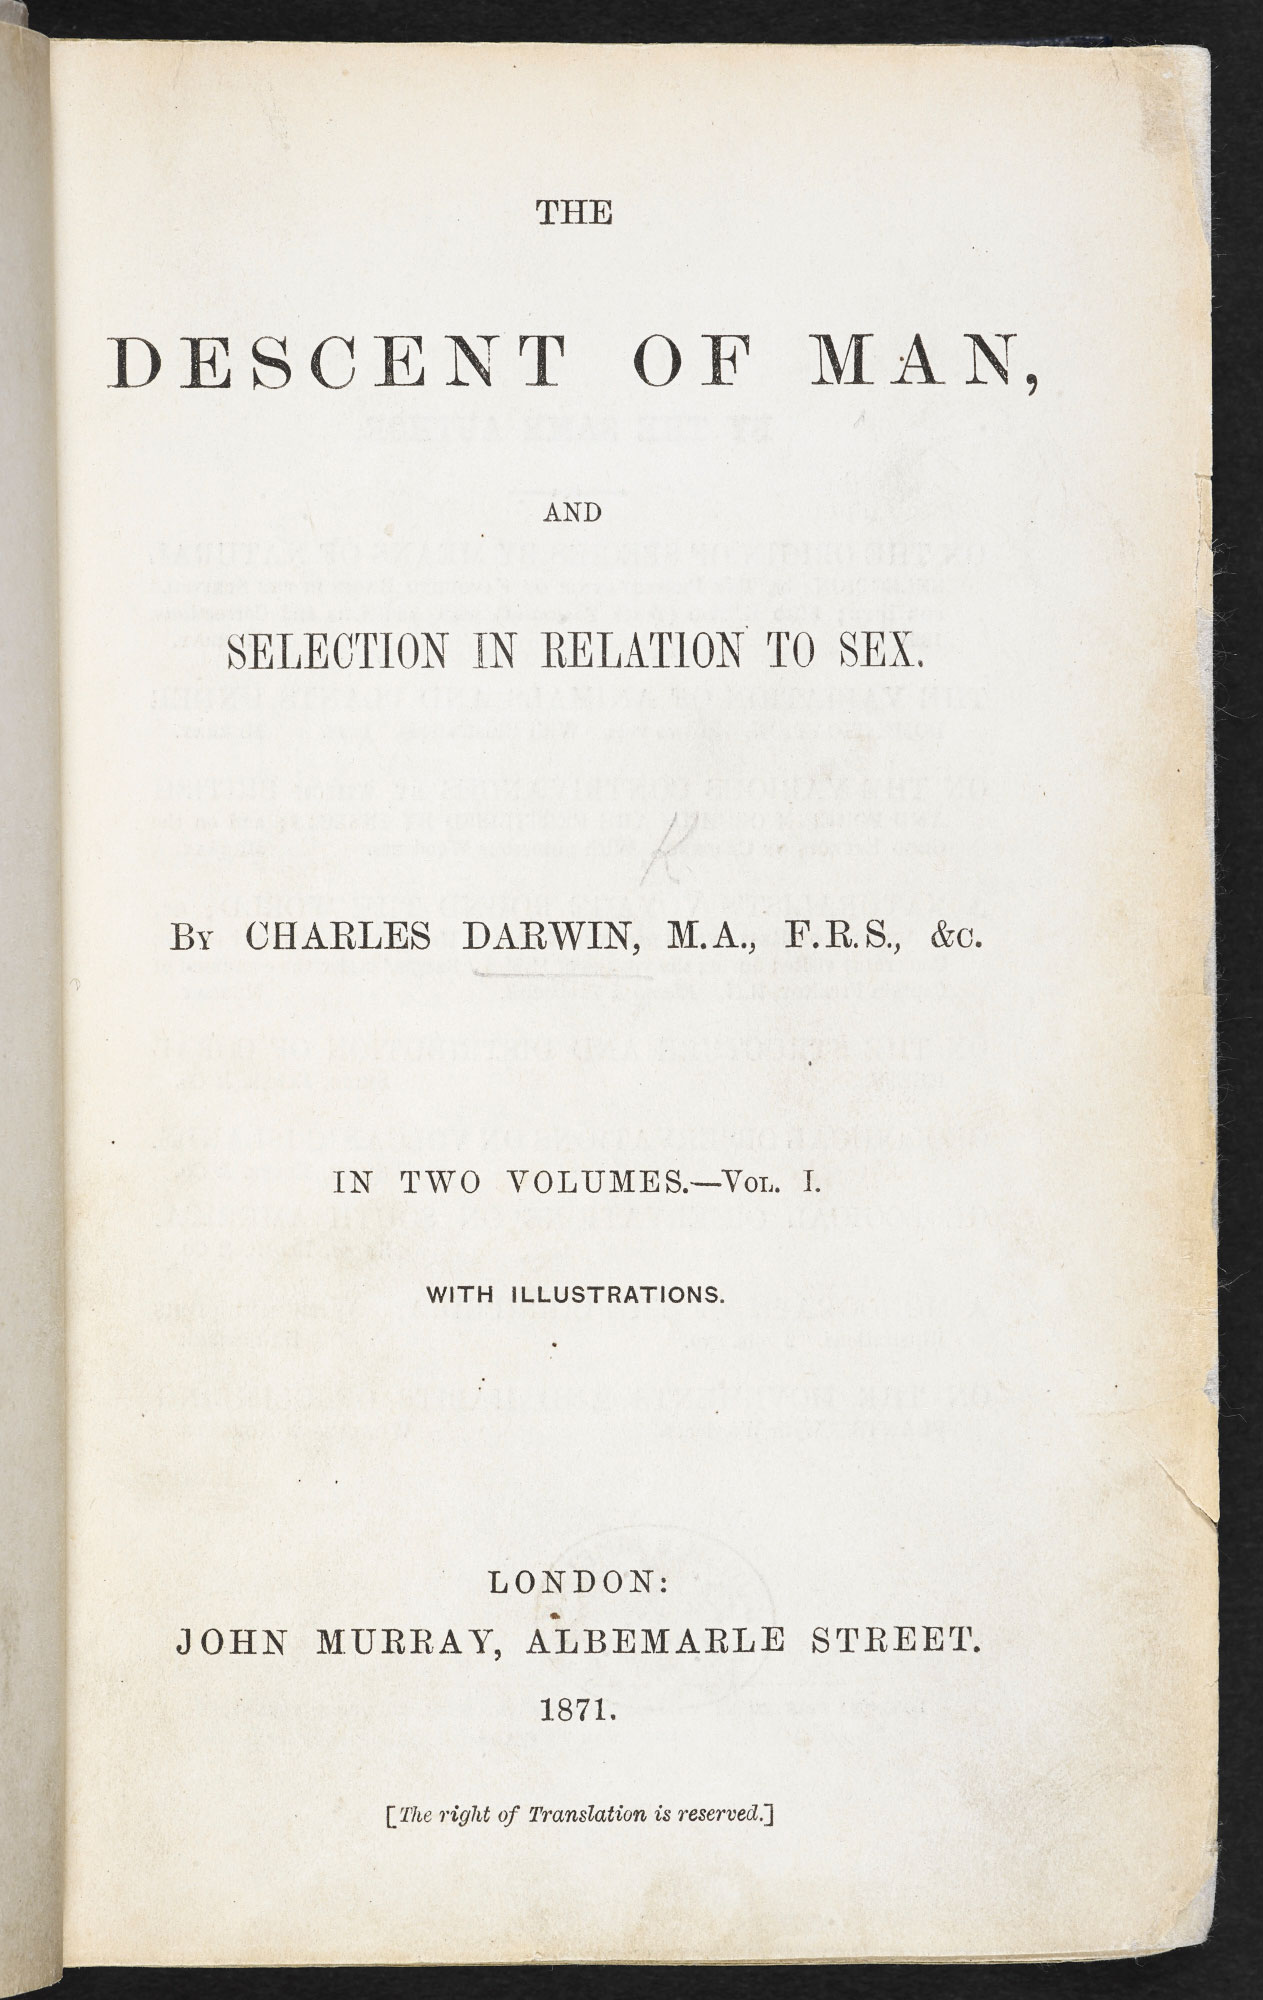 The Descent of Man by Darwin